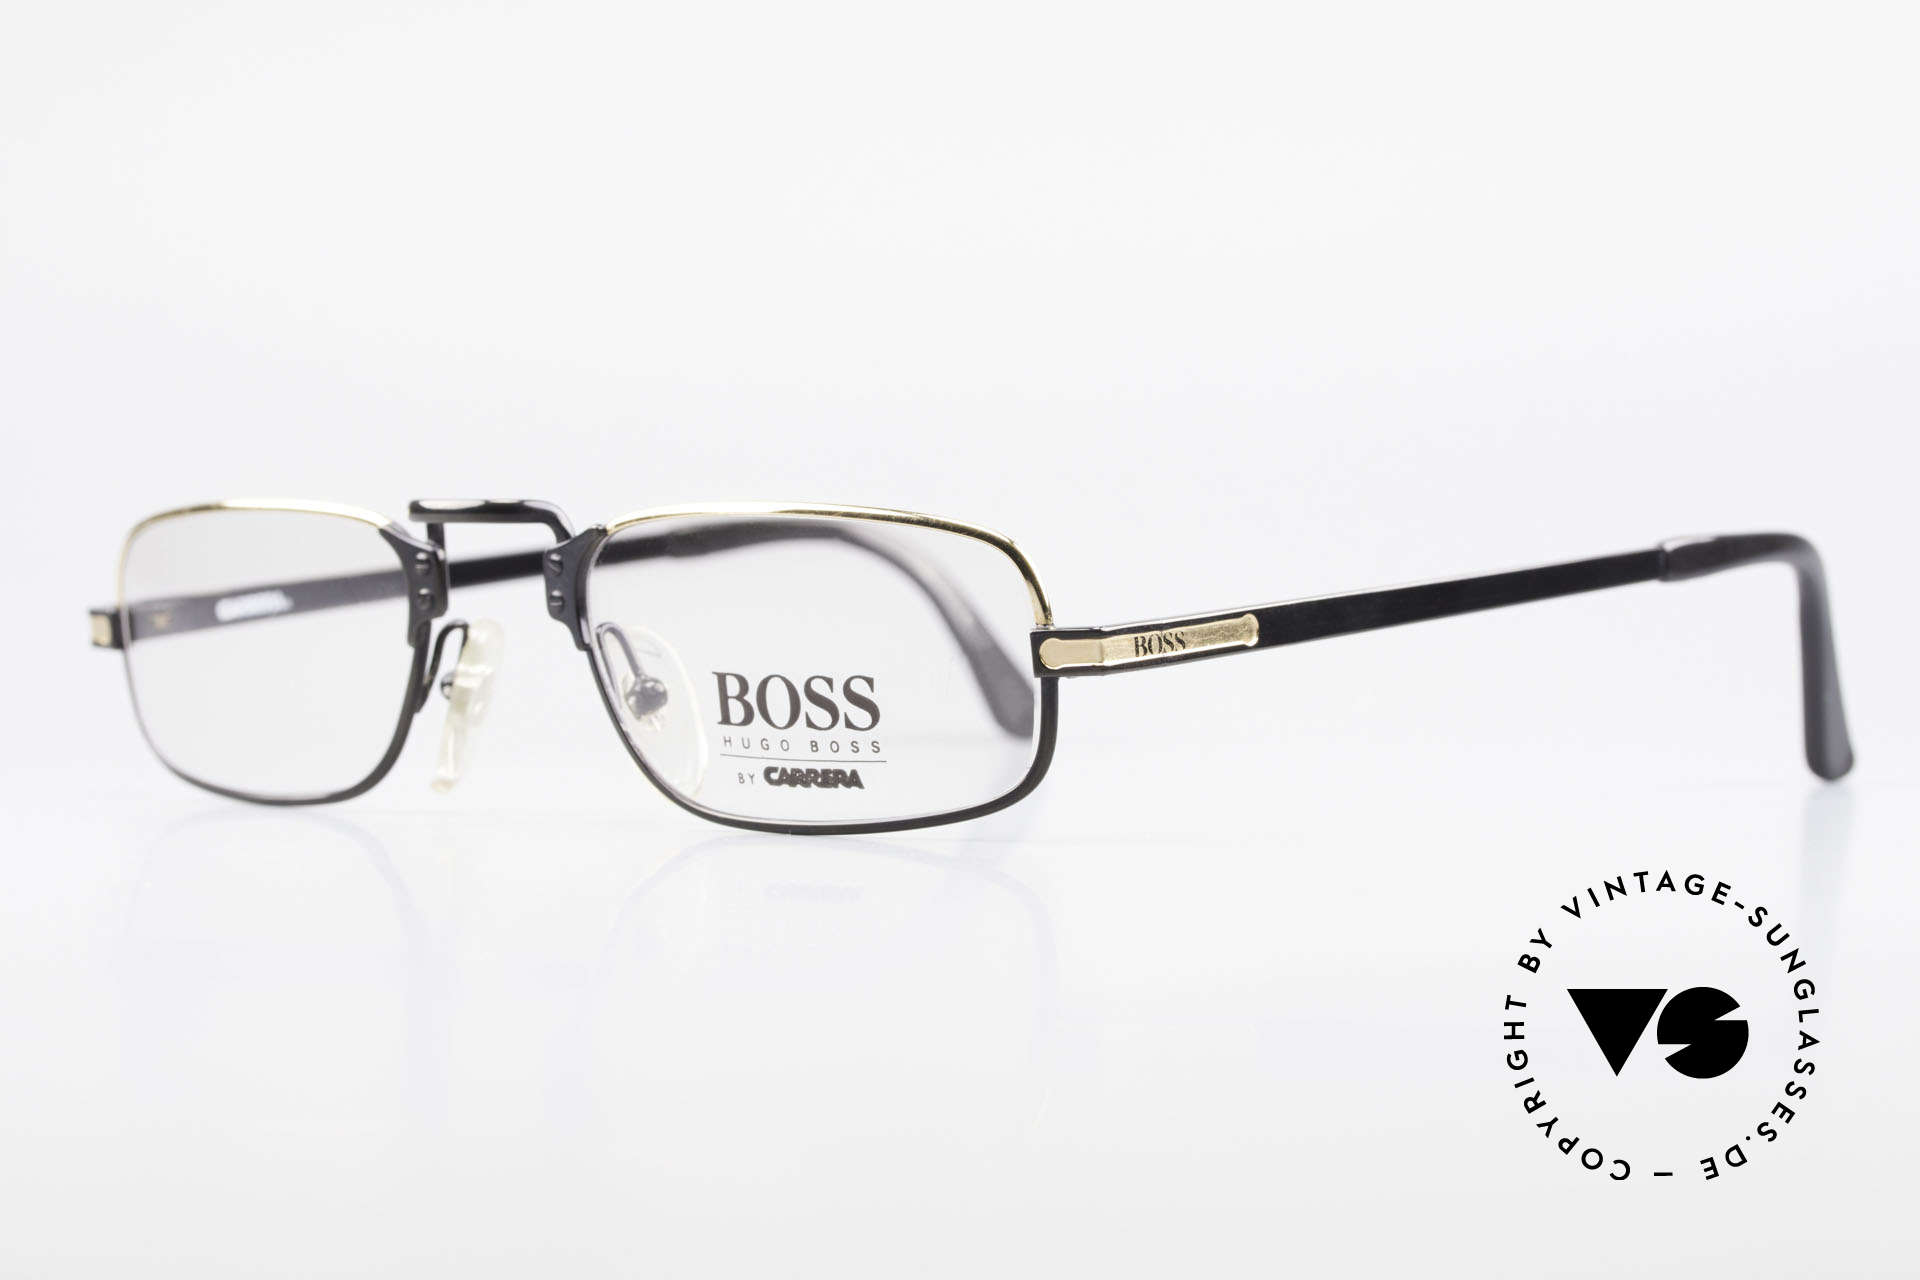 BOSS 5100 Classic Men's Reading Glasses, very dressy color combination in black and GOLD, Made for Men